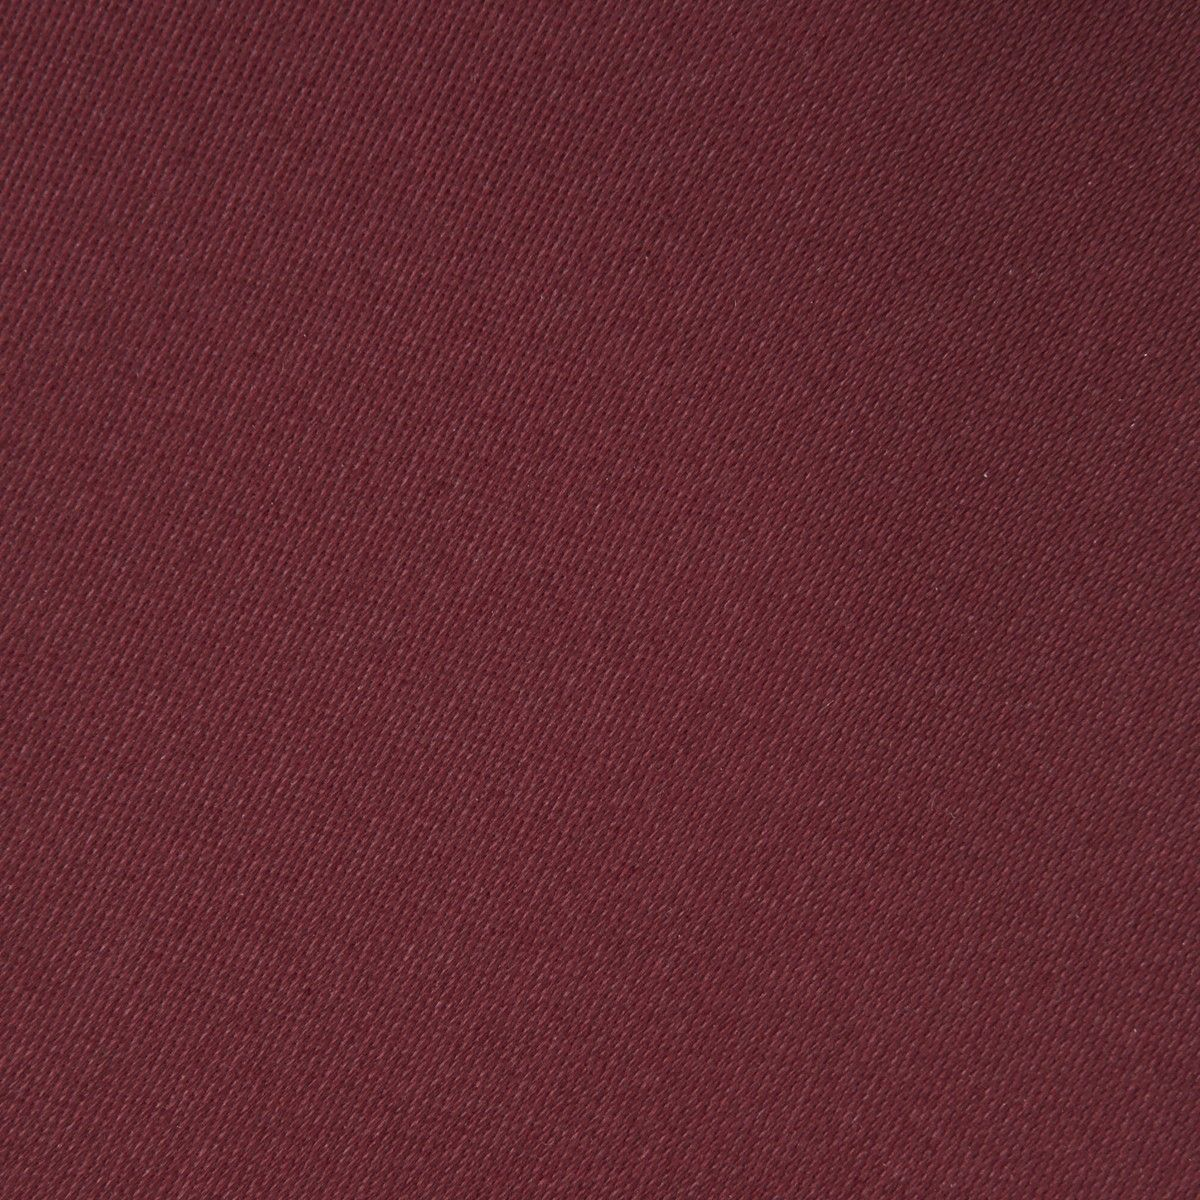 282645d0741c Slim Burgundy Plain Satin Silk Tie by Turnbull & Asser | Products ...